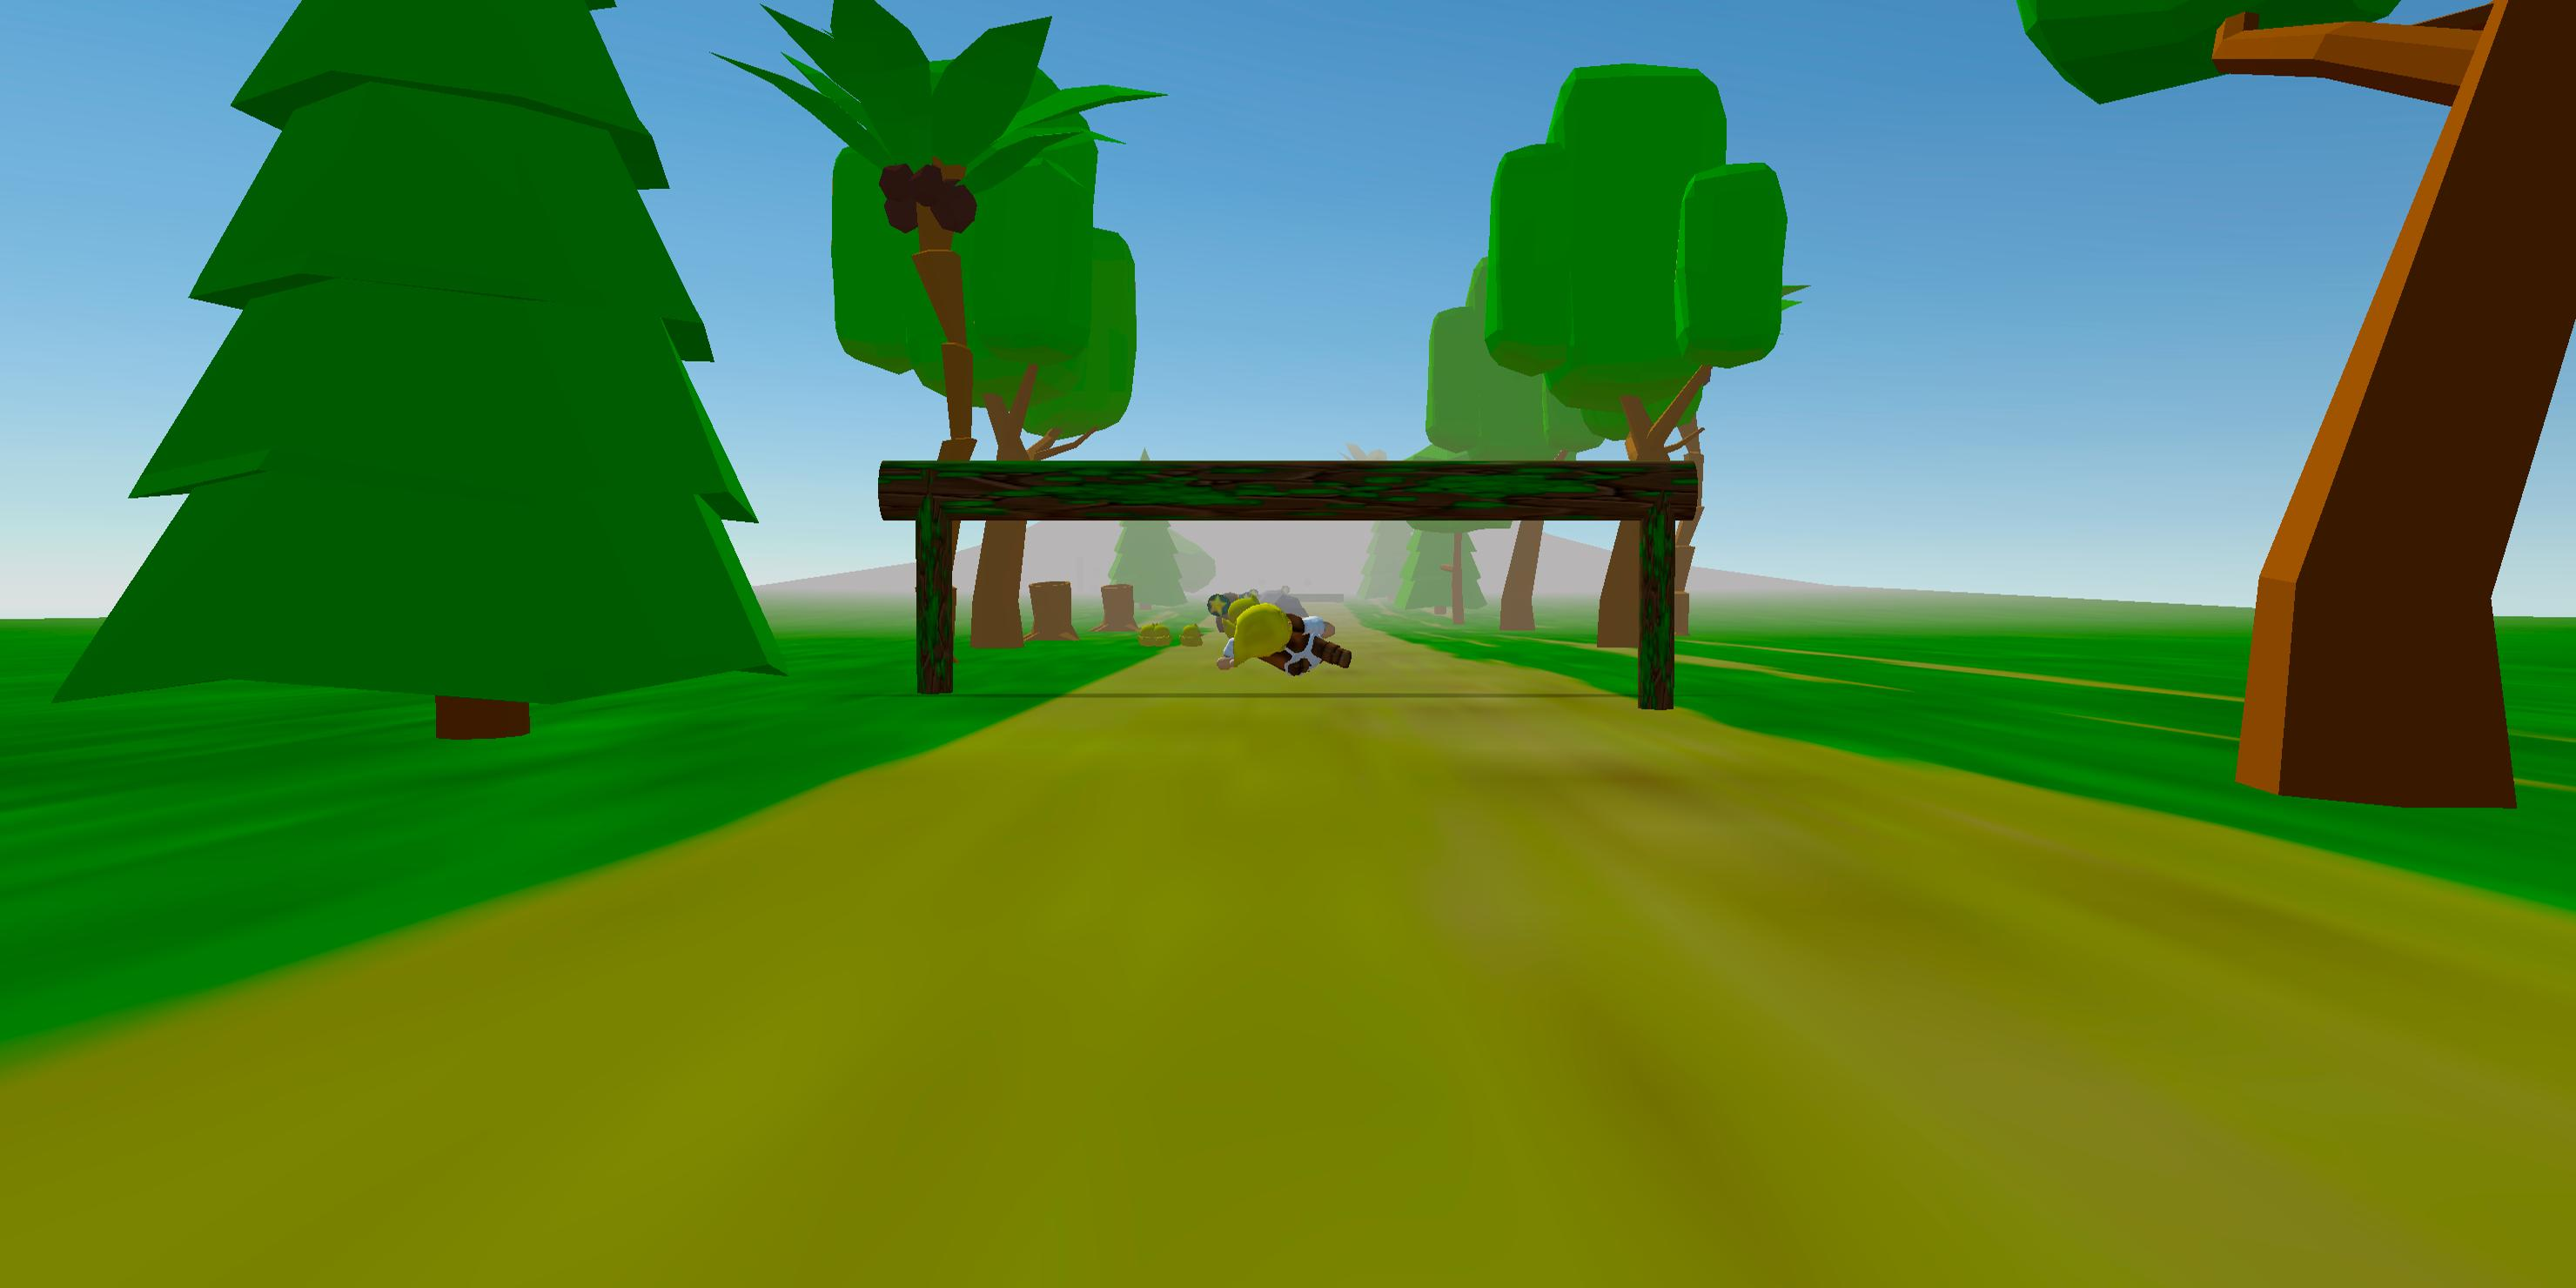 Running Crazy Farm 0.4 Screenshot 5